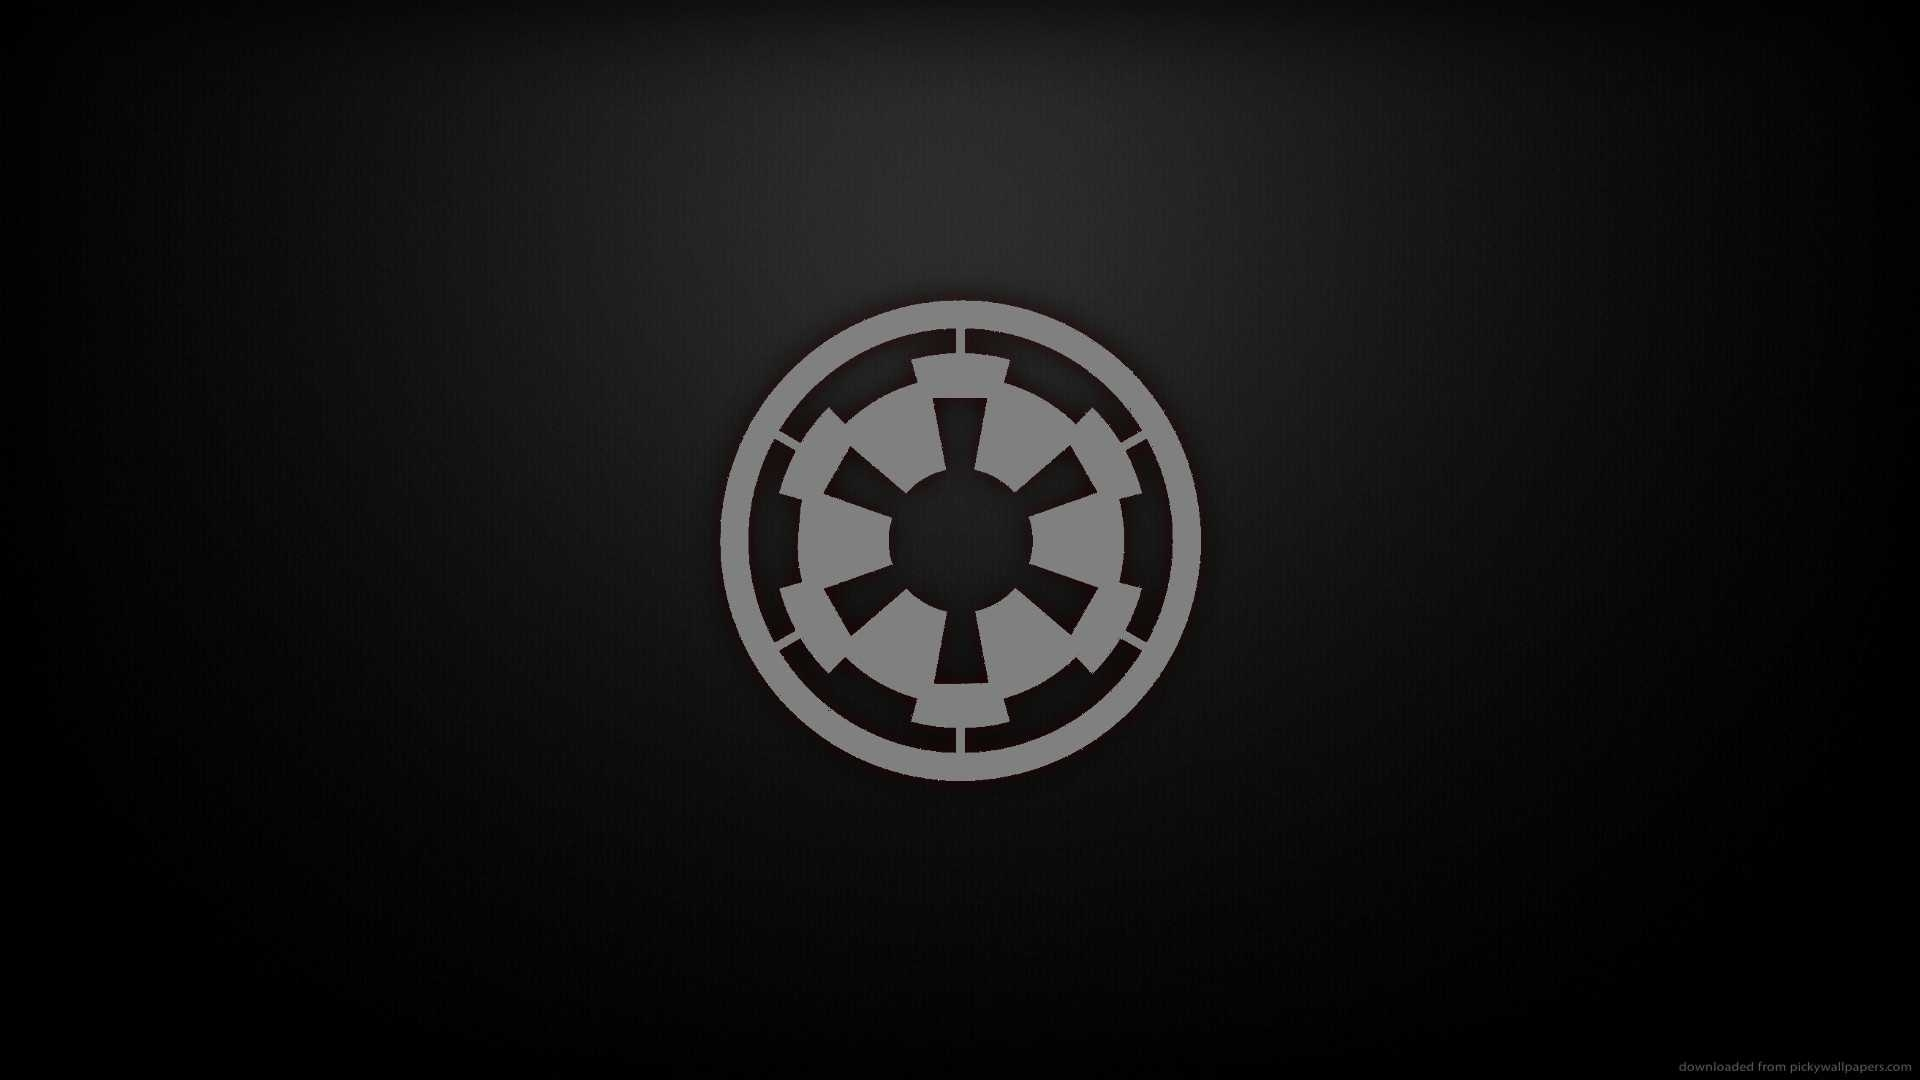 star wars logo wallpaper high resolution full hd imperial of